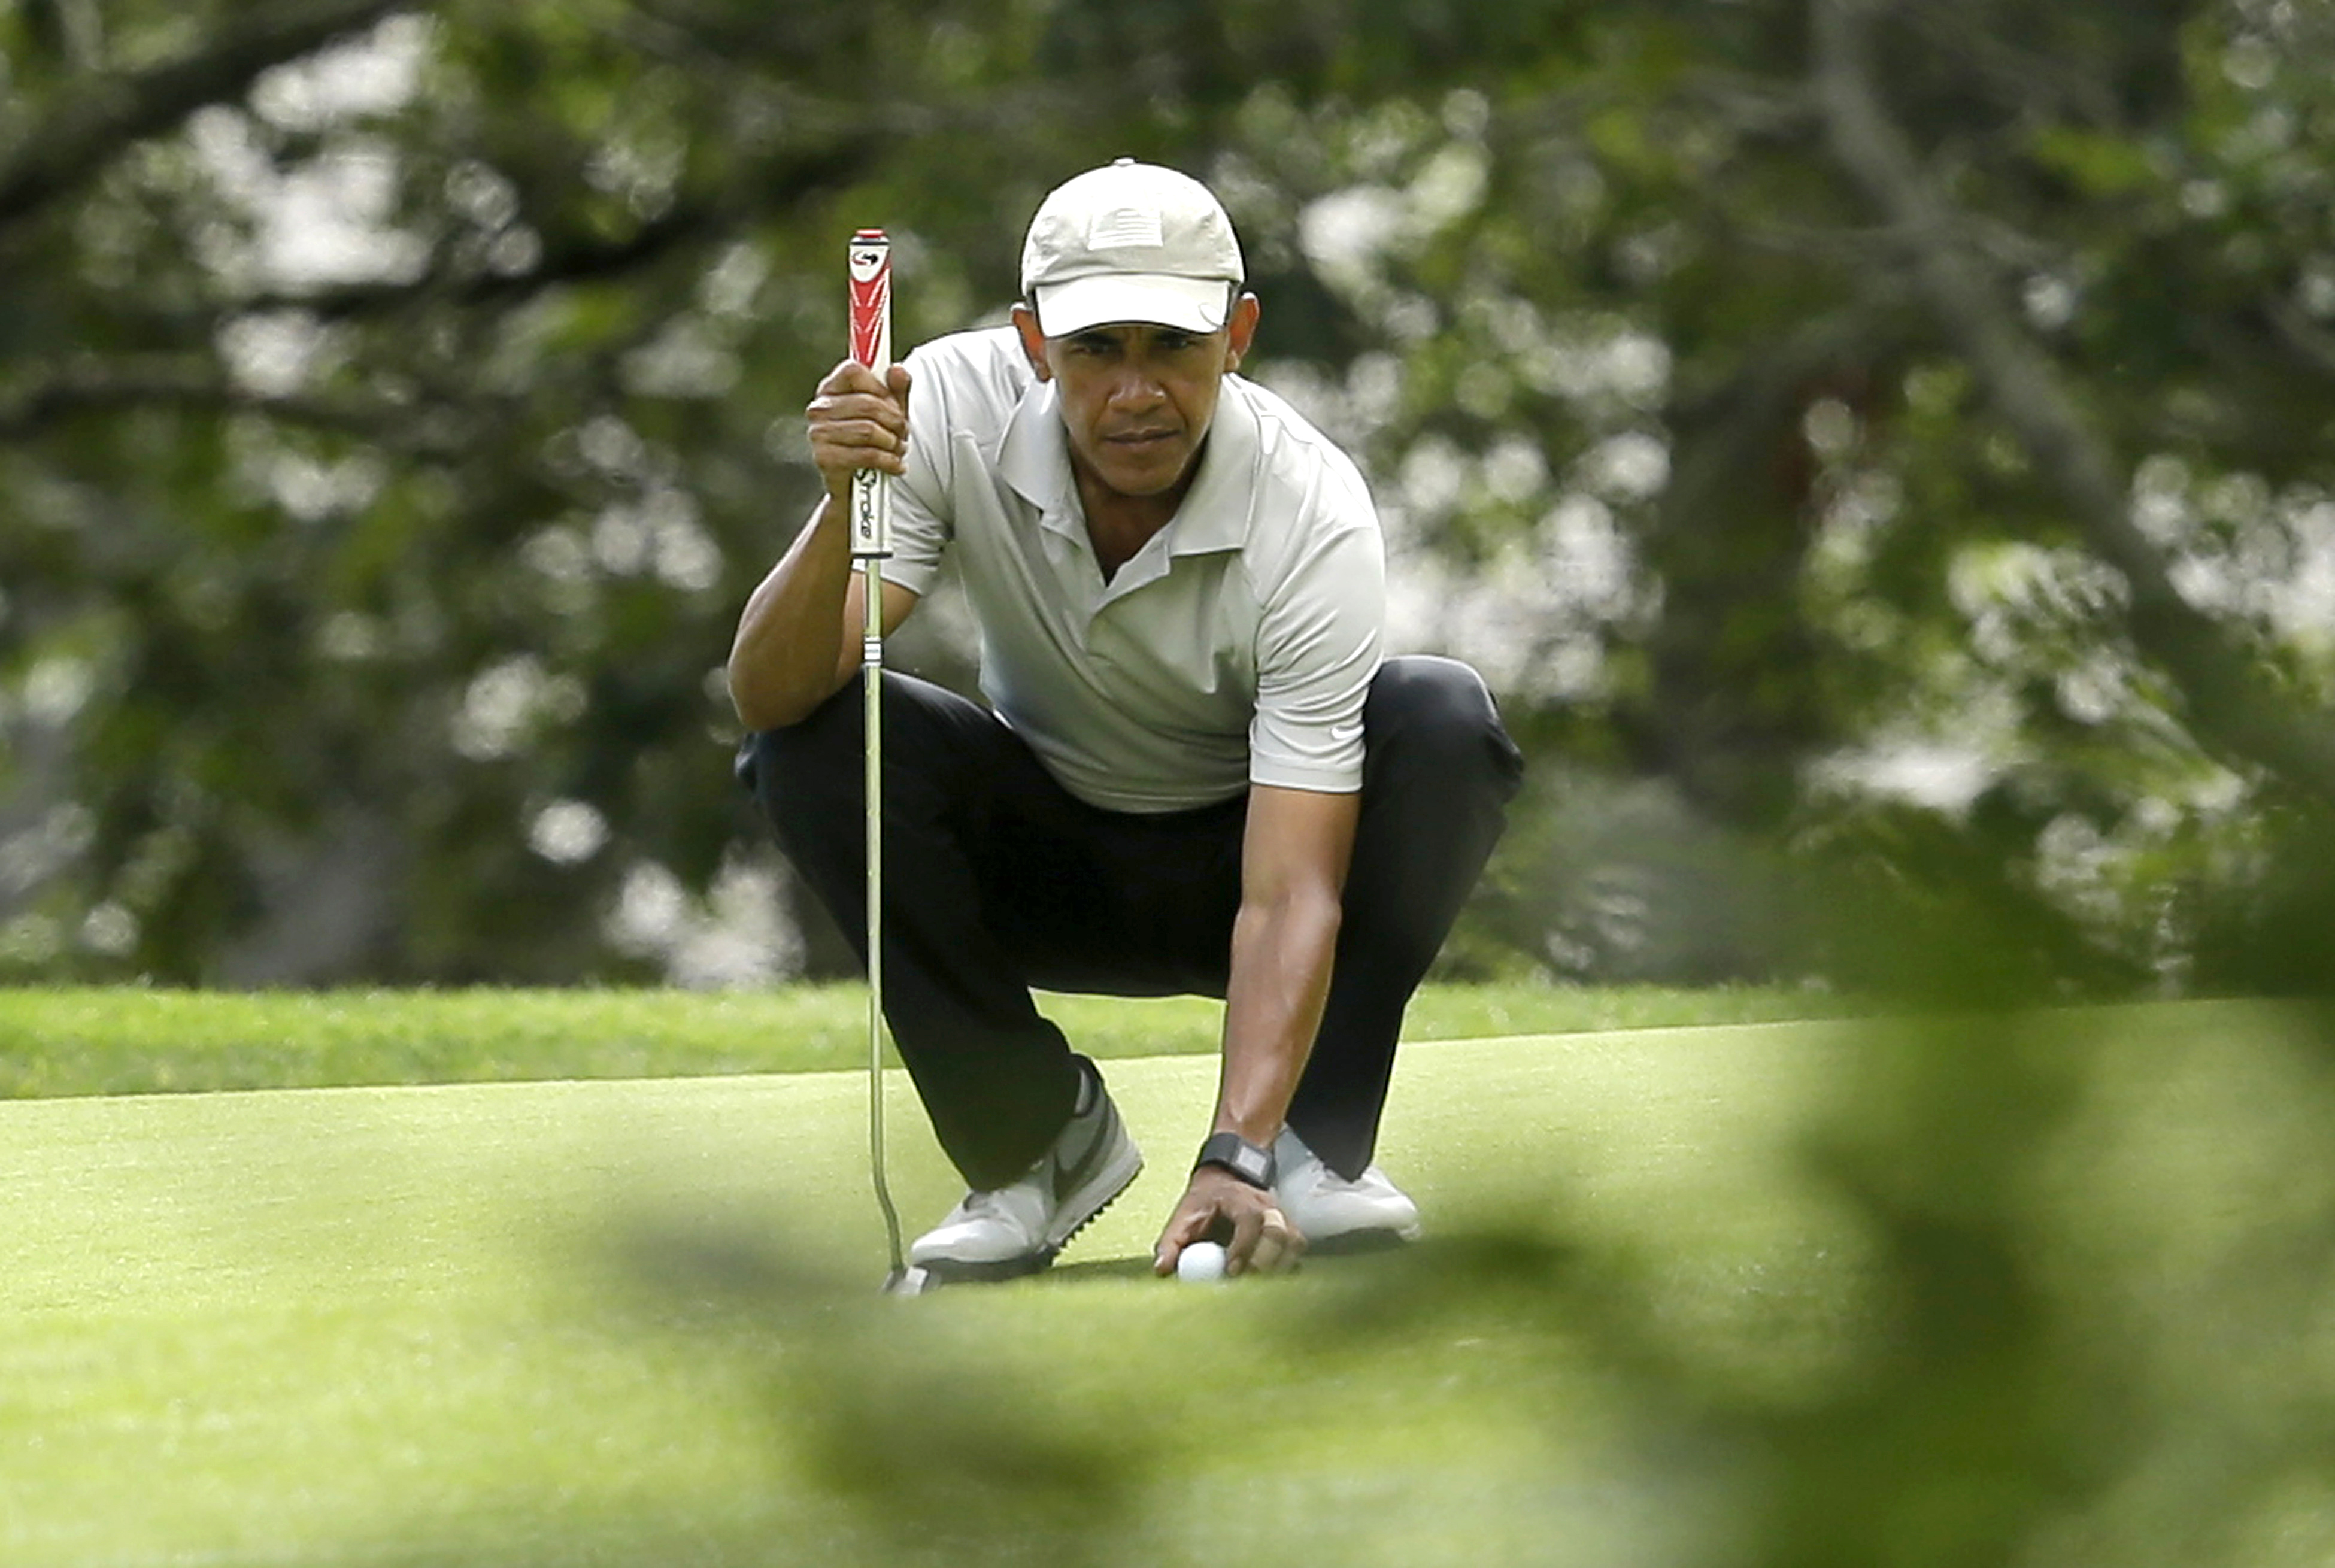 President Barack Obama places his ball on the green before putting while golfing on Aug. 23, 2015, at Farm Neck Golf Club, in Oak Bluffs, Mass., on the island of Martha's Vineyard.